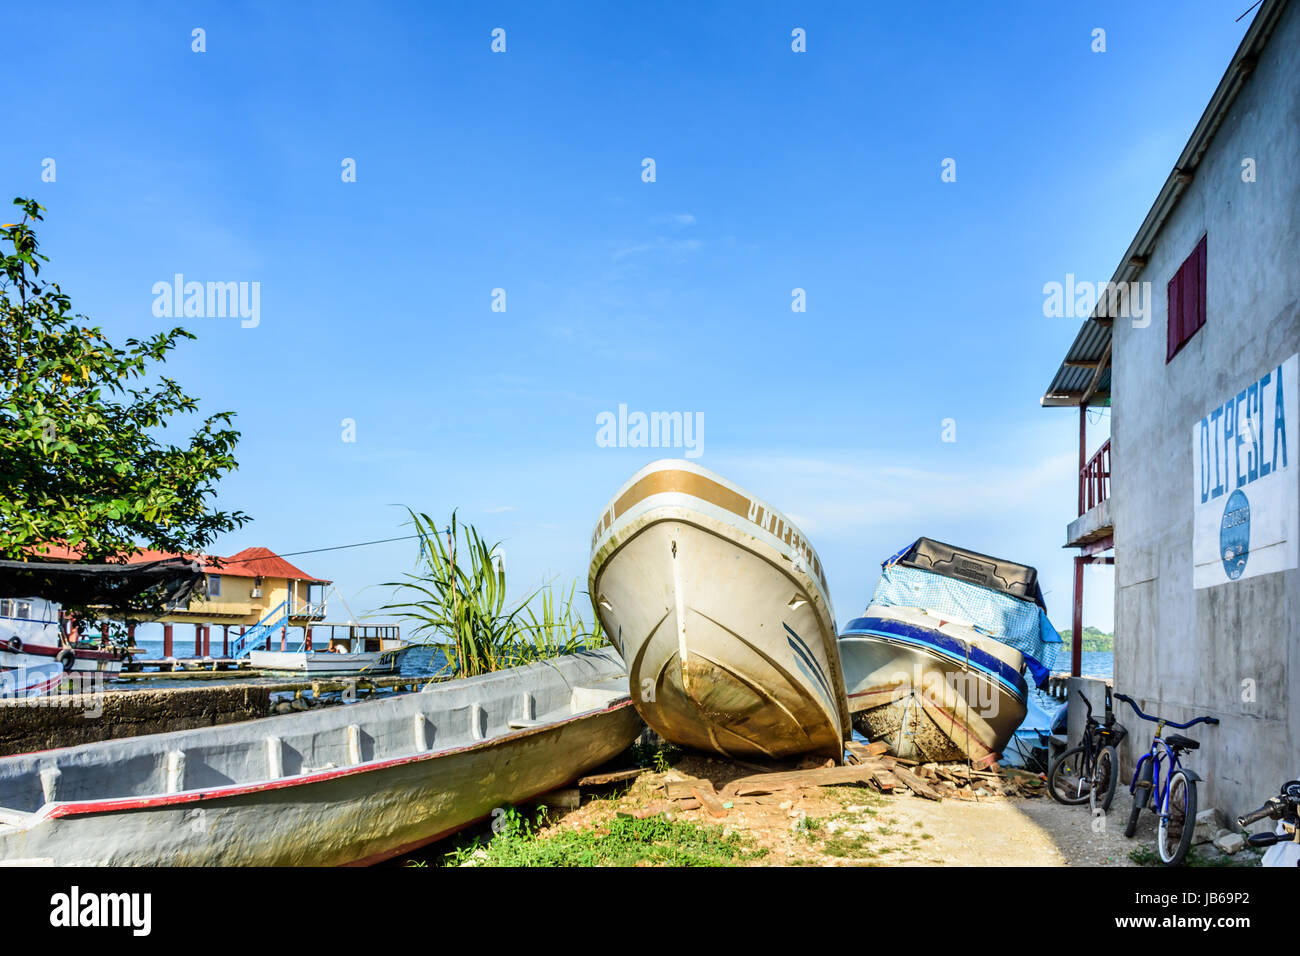 Livingston, Guatemala - August 31, 2016: Fishing boats pulled ashore on riverbank of Rio Dulce in Caribbean town - Stock Image